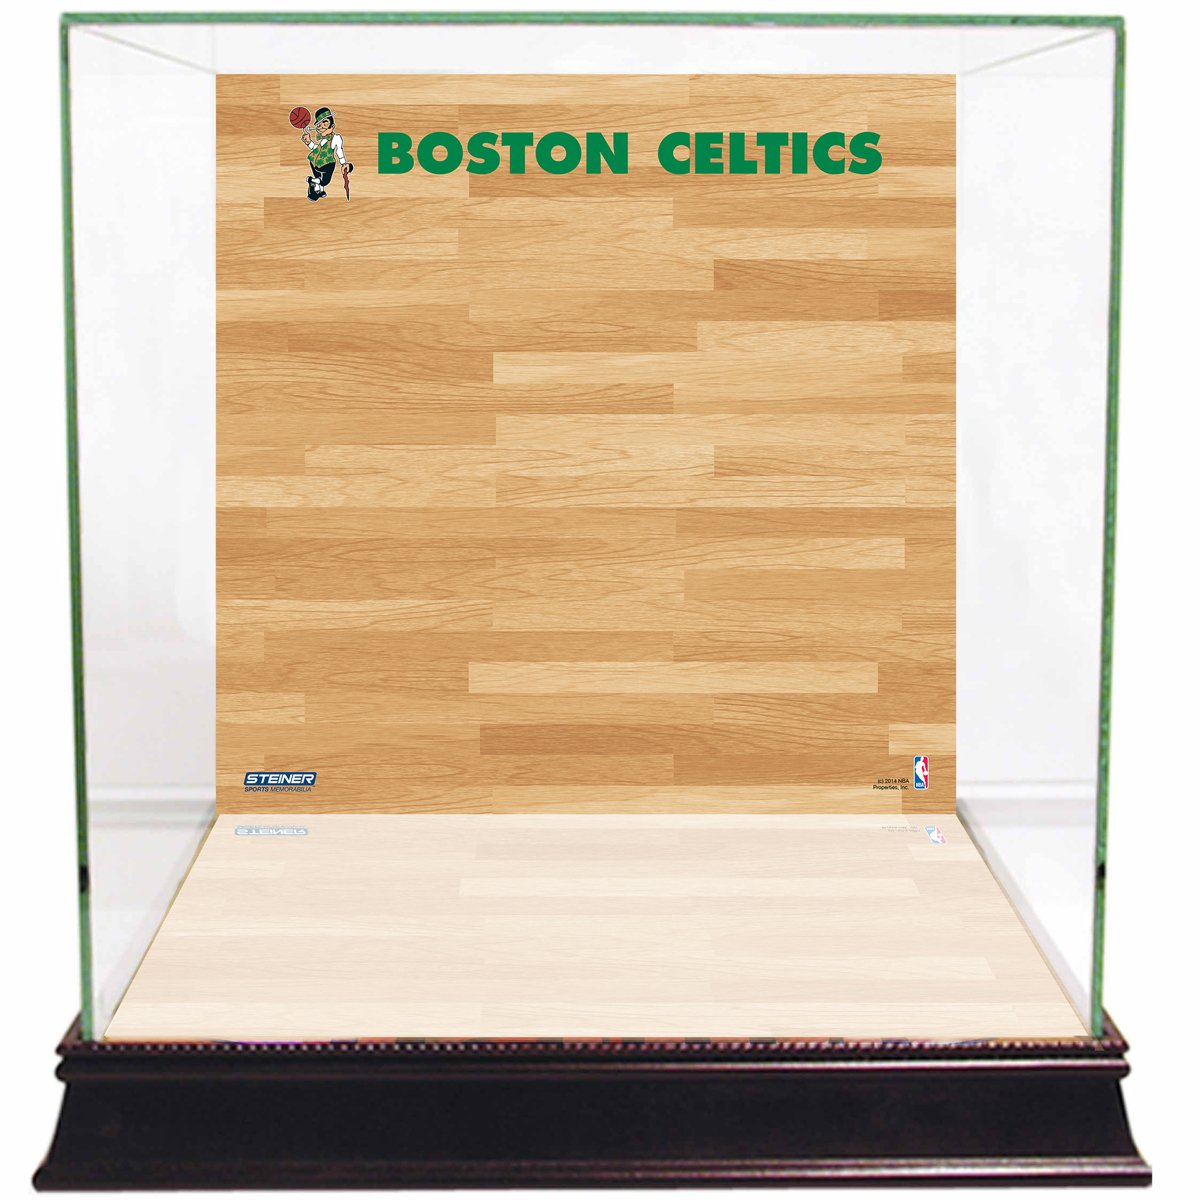 NBA Boston Celtics Glass Basketball Display Case with Team Logo on Court Background by Steiner Sports